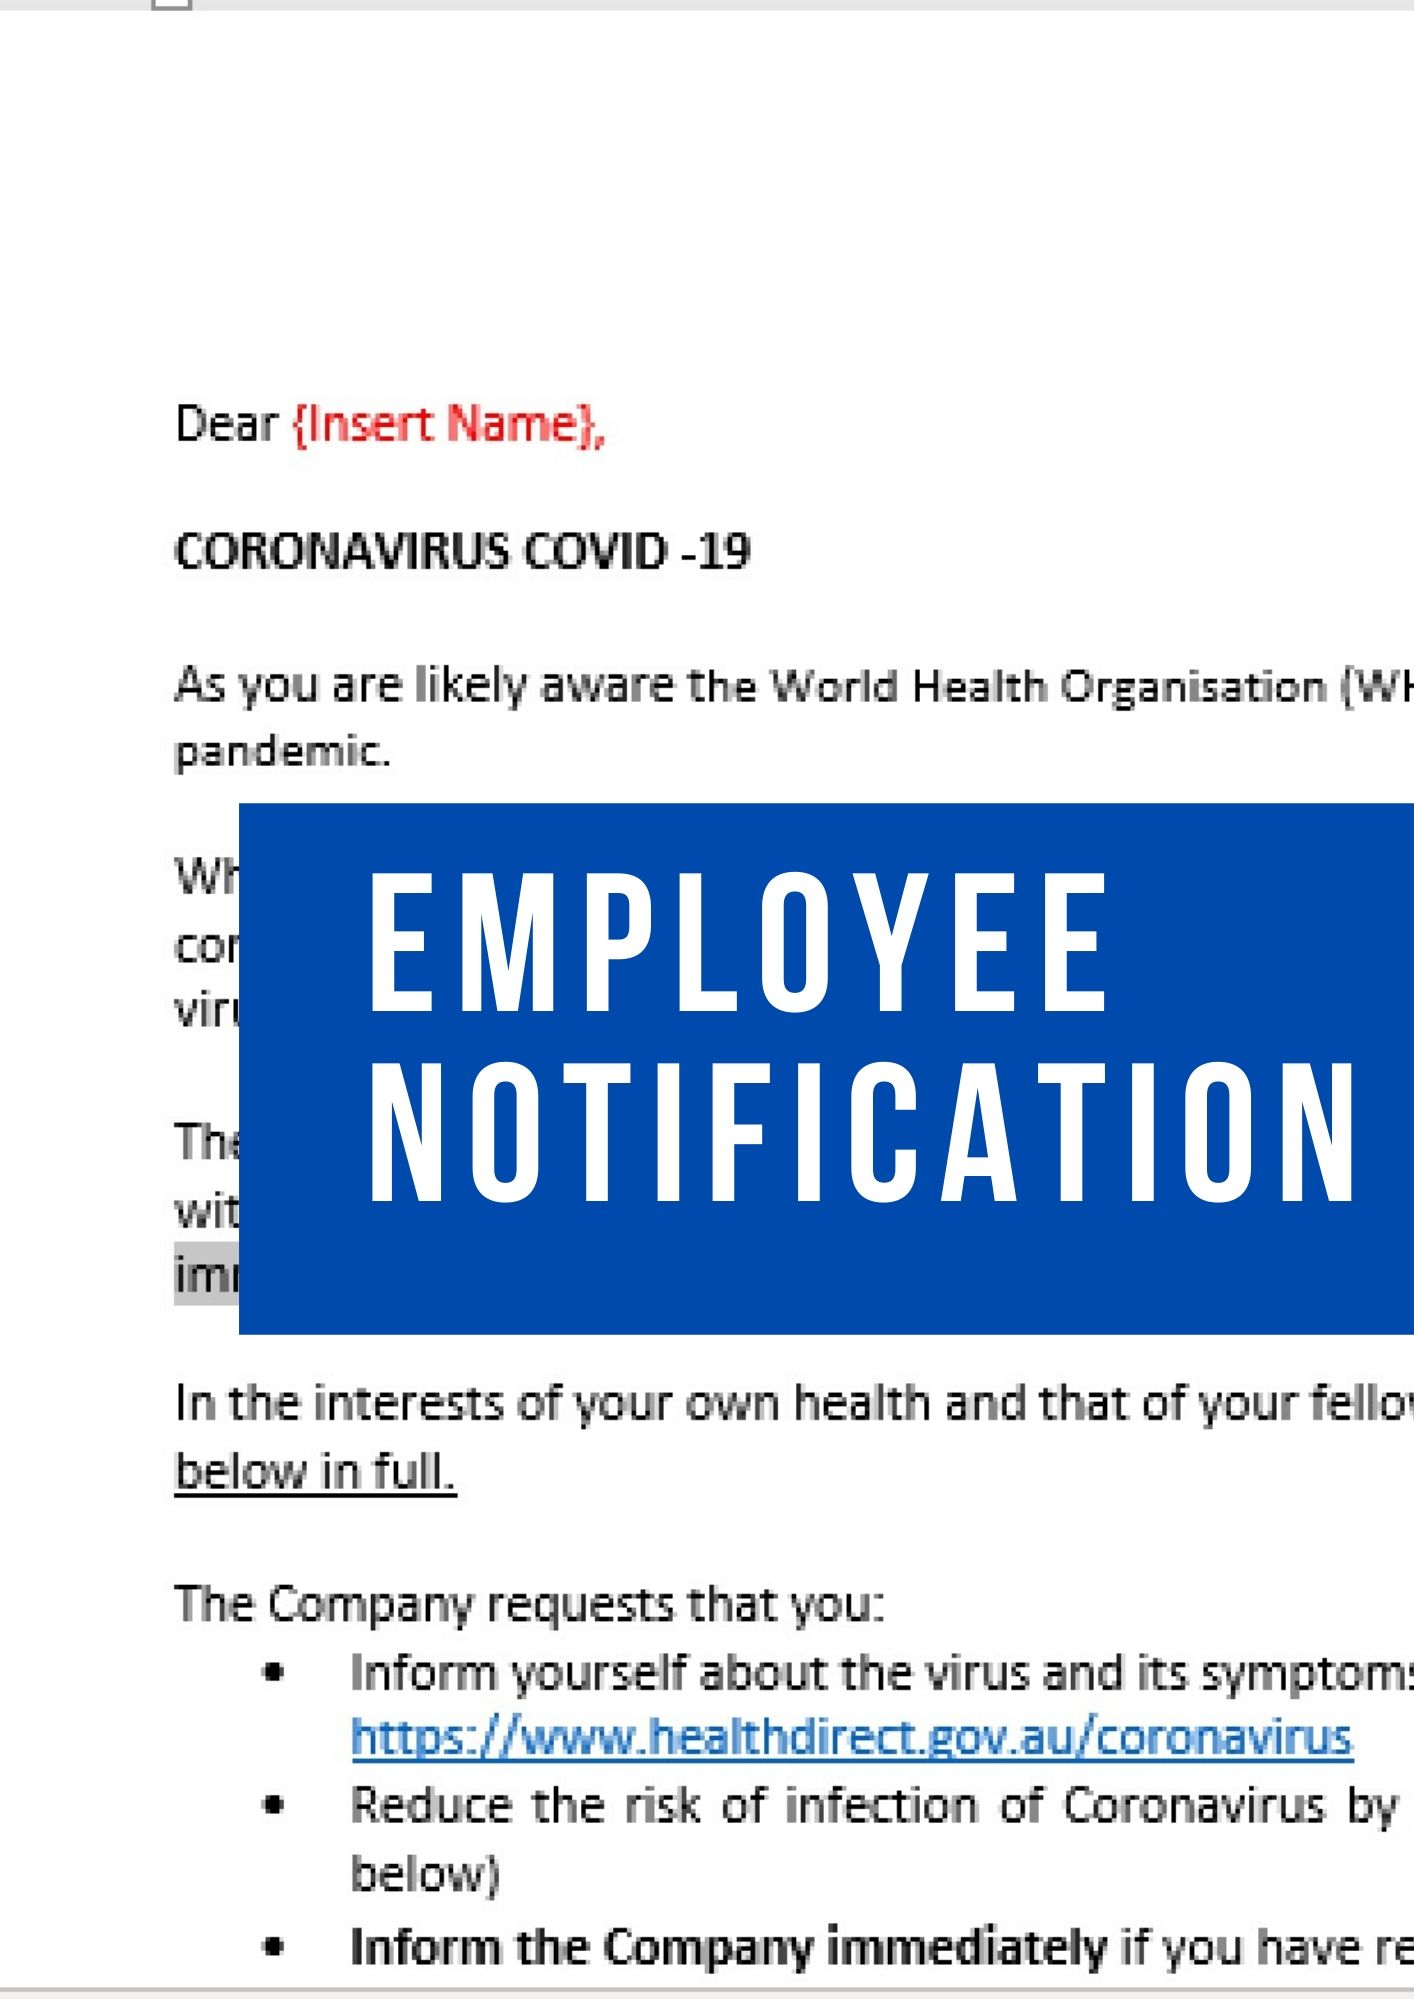 Employee notification email (1)